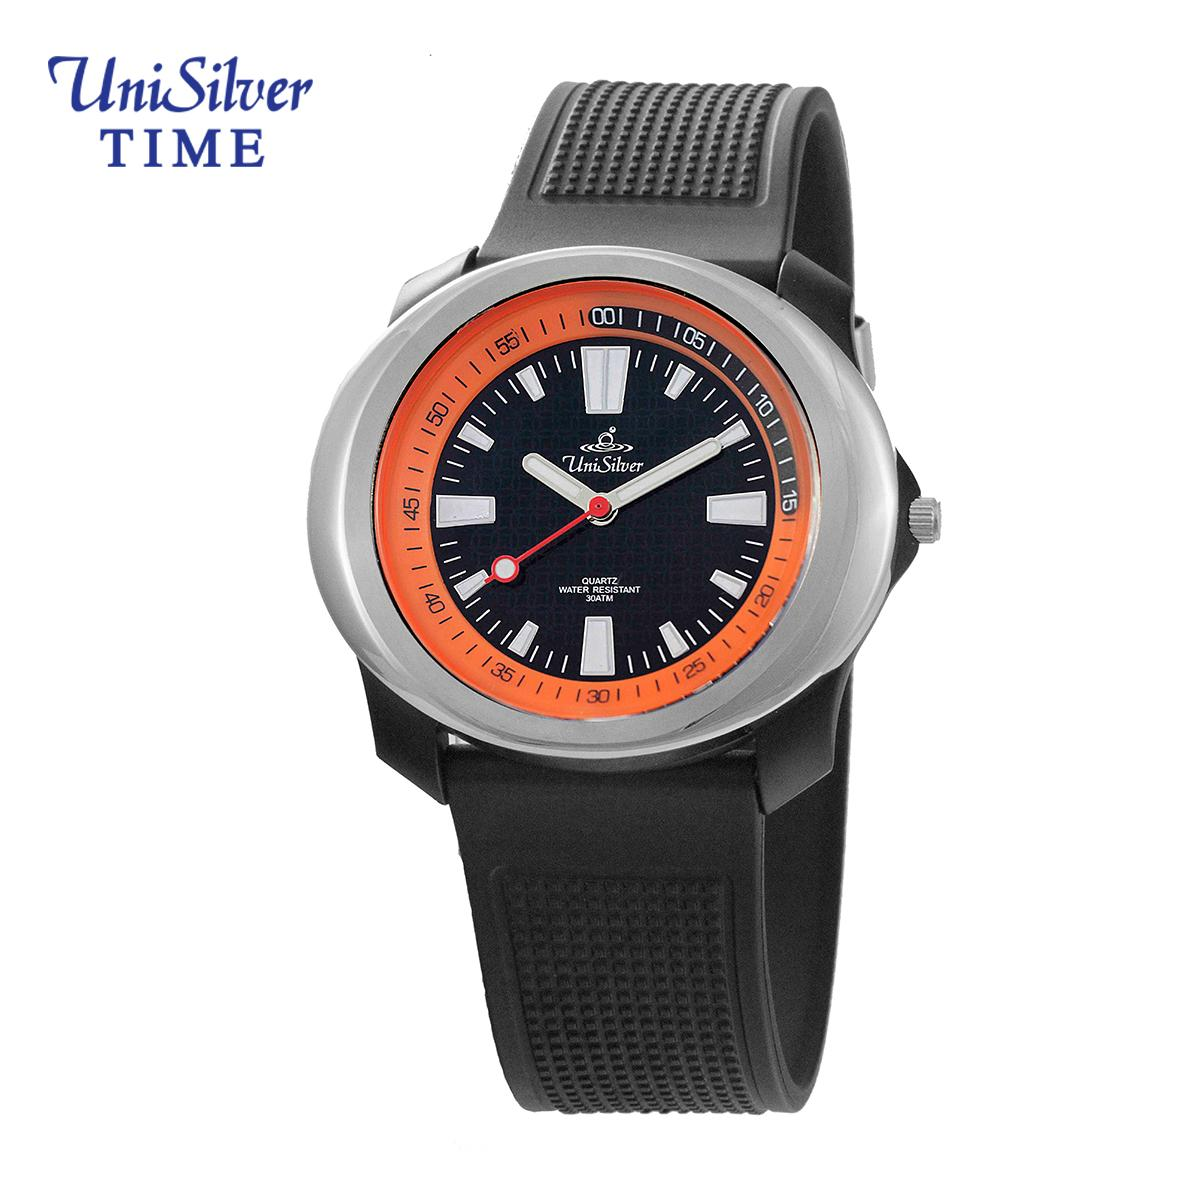 UniSilver TIME Prime Trooper Men's Black / Silver / Orange Analog Rubber Watch KW1003-1000